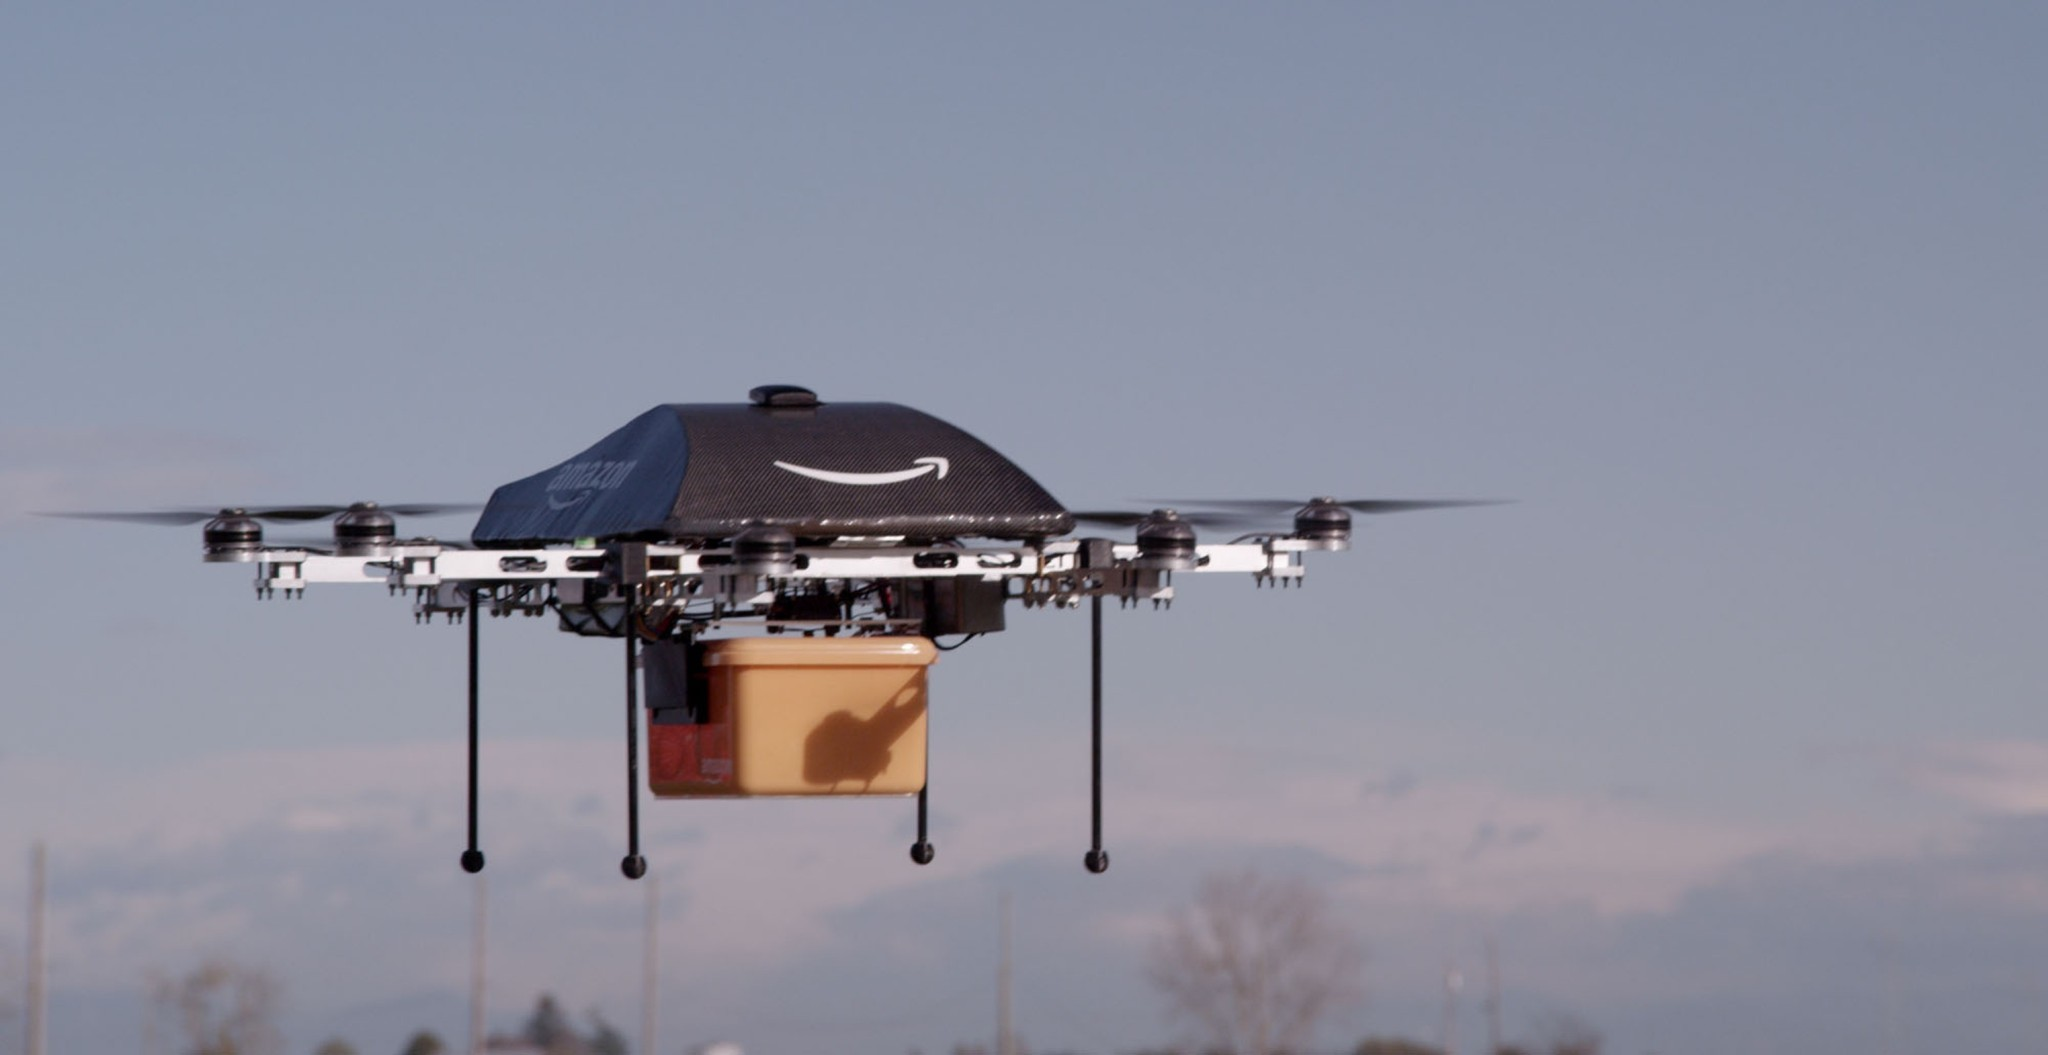 FAA Needs To Make Thoughtful Safety Rules Before Drones Deliver Our Packages Or Pizza